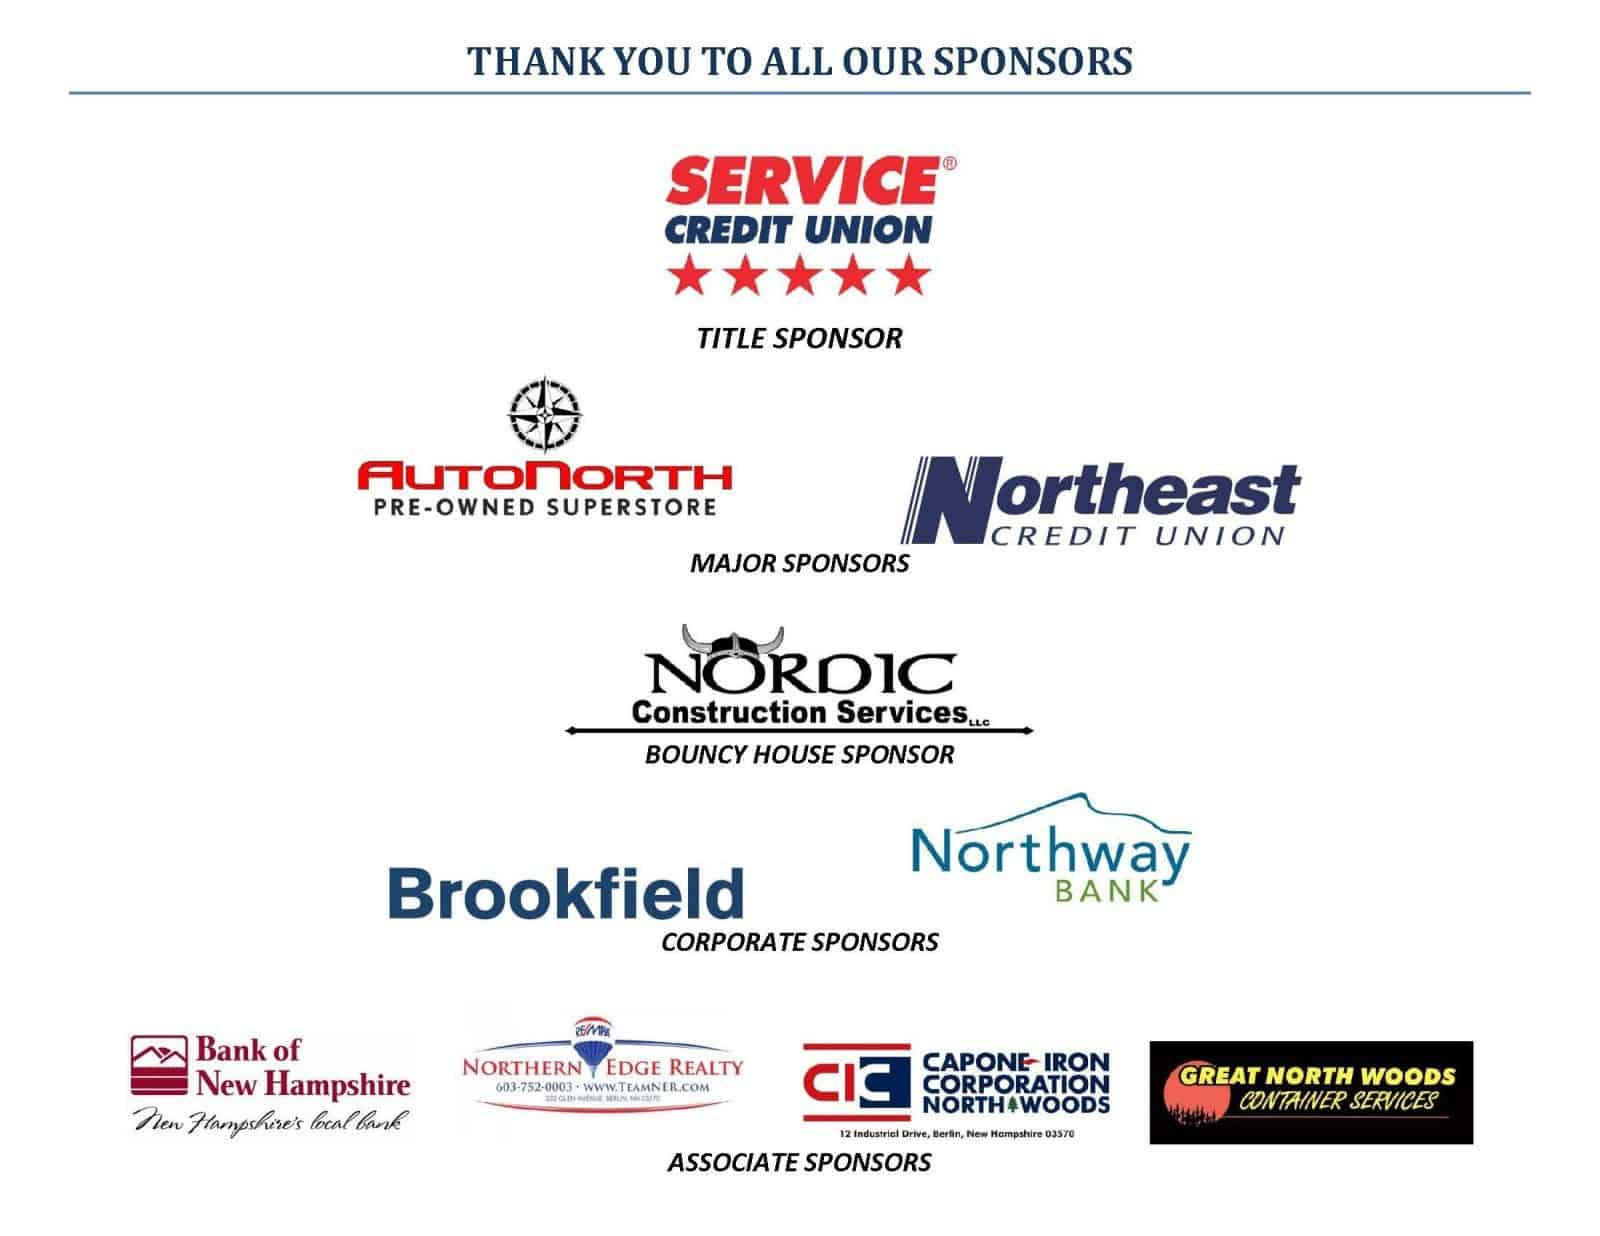 THANK YOU TO ALL OUR SPONSORS